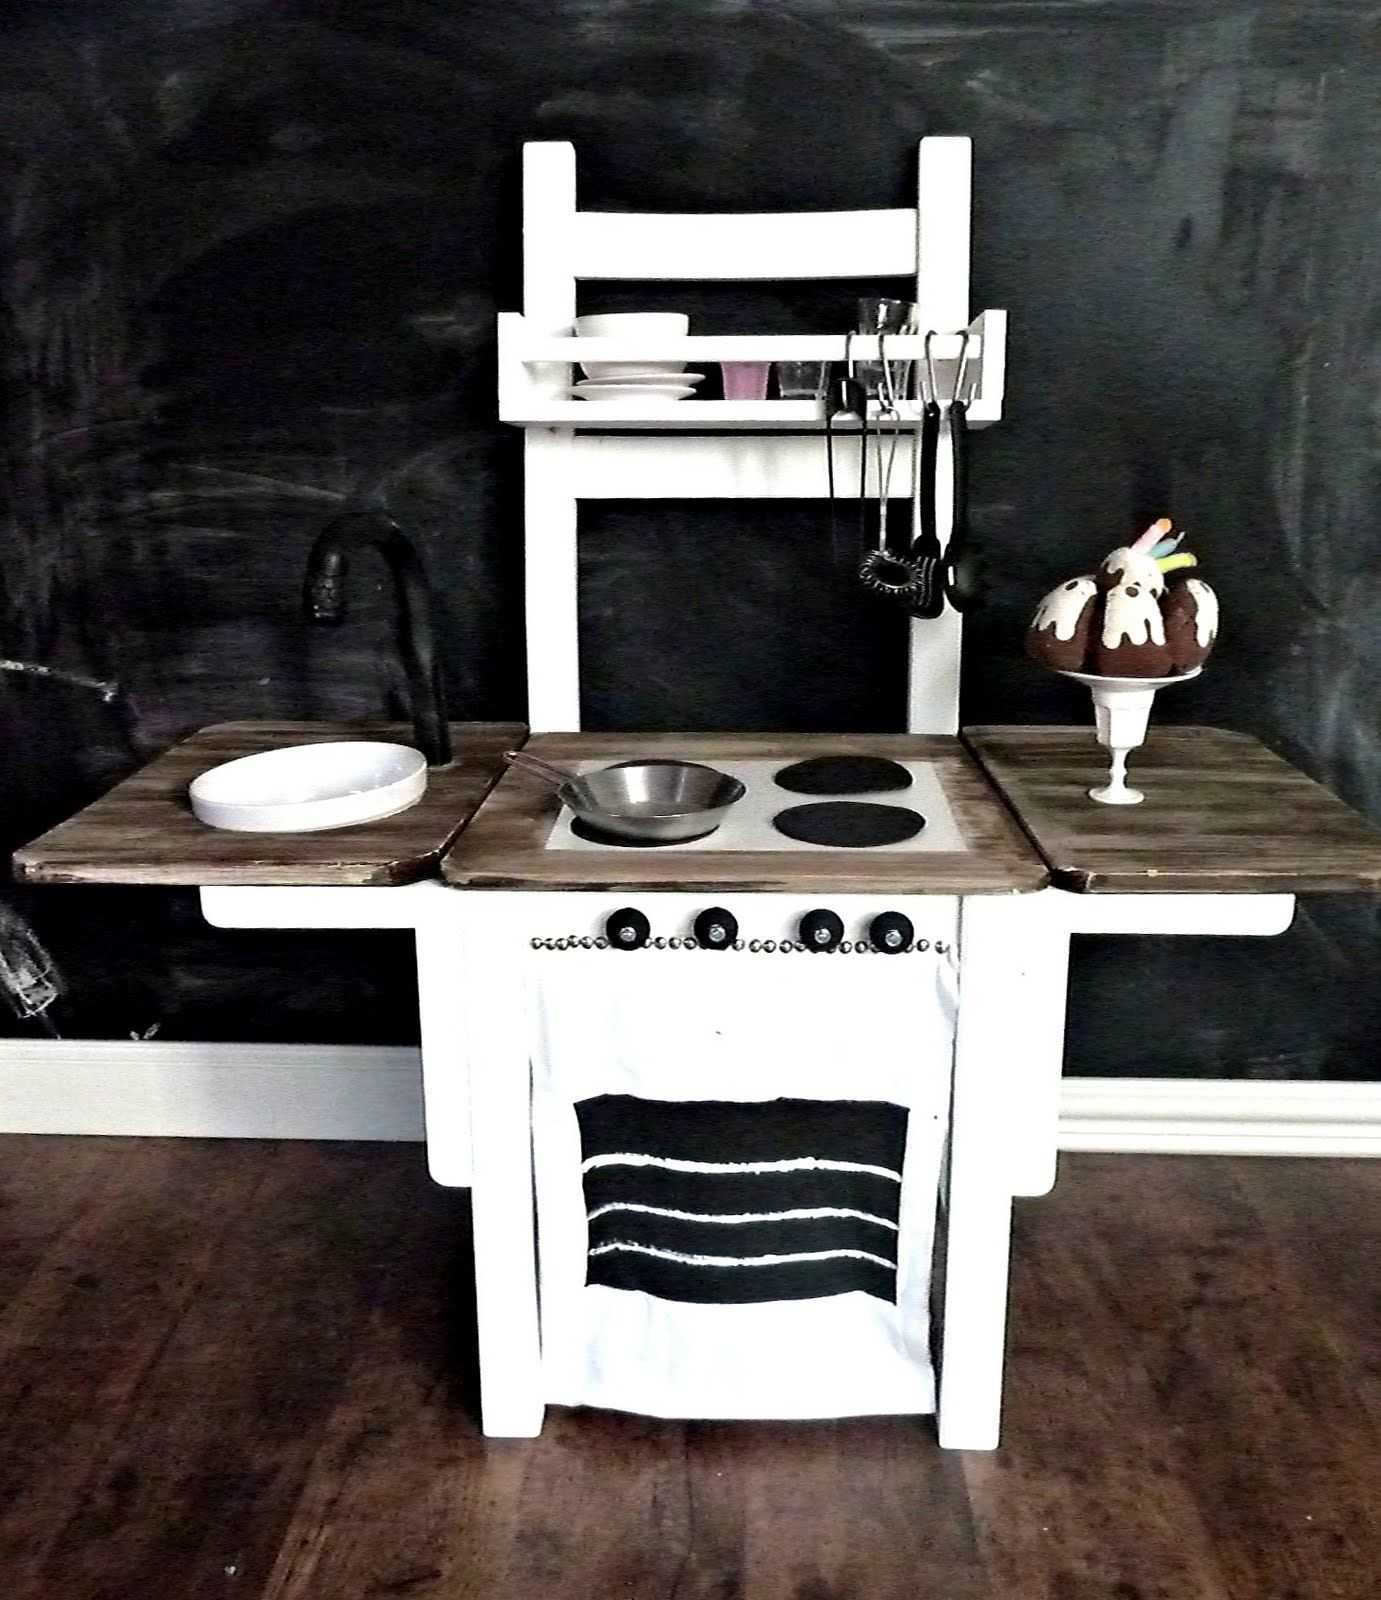 make a diy play kitchen made from a chair!